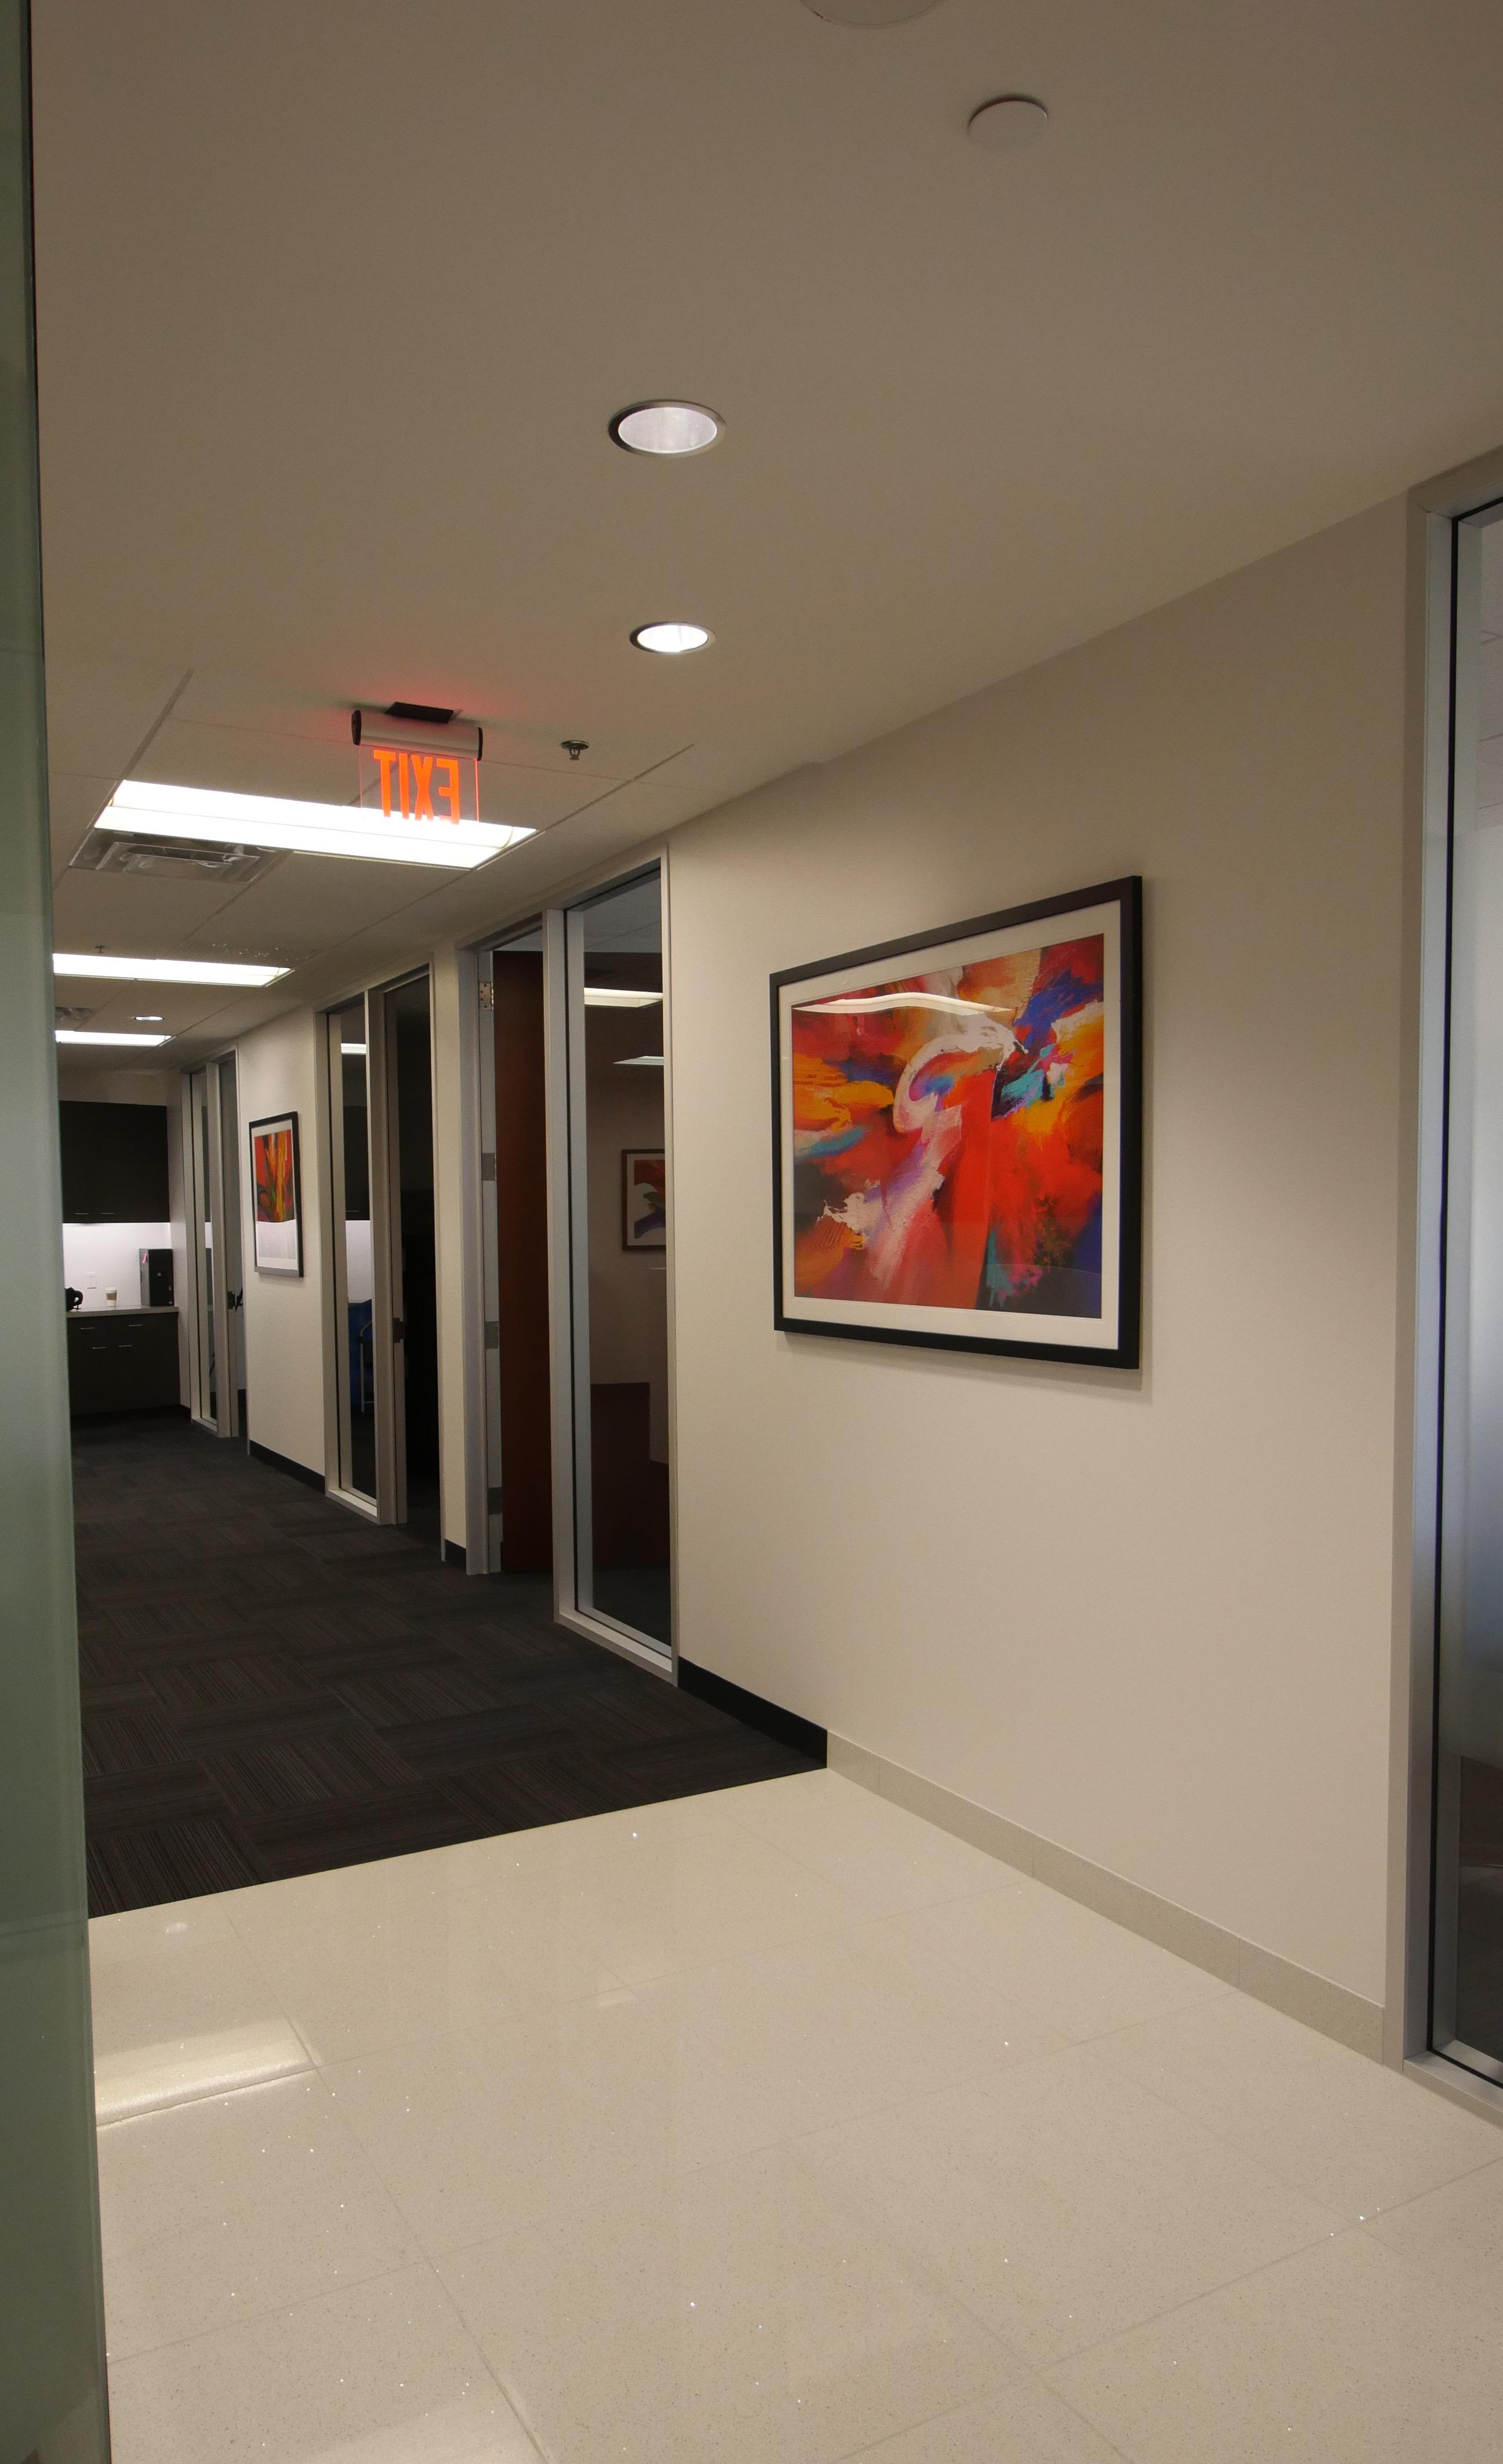 4900 N. Scottsdale Rd.  Scottsdale AZ Available Office for Rent